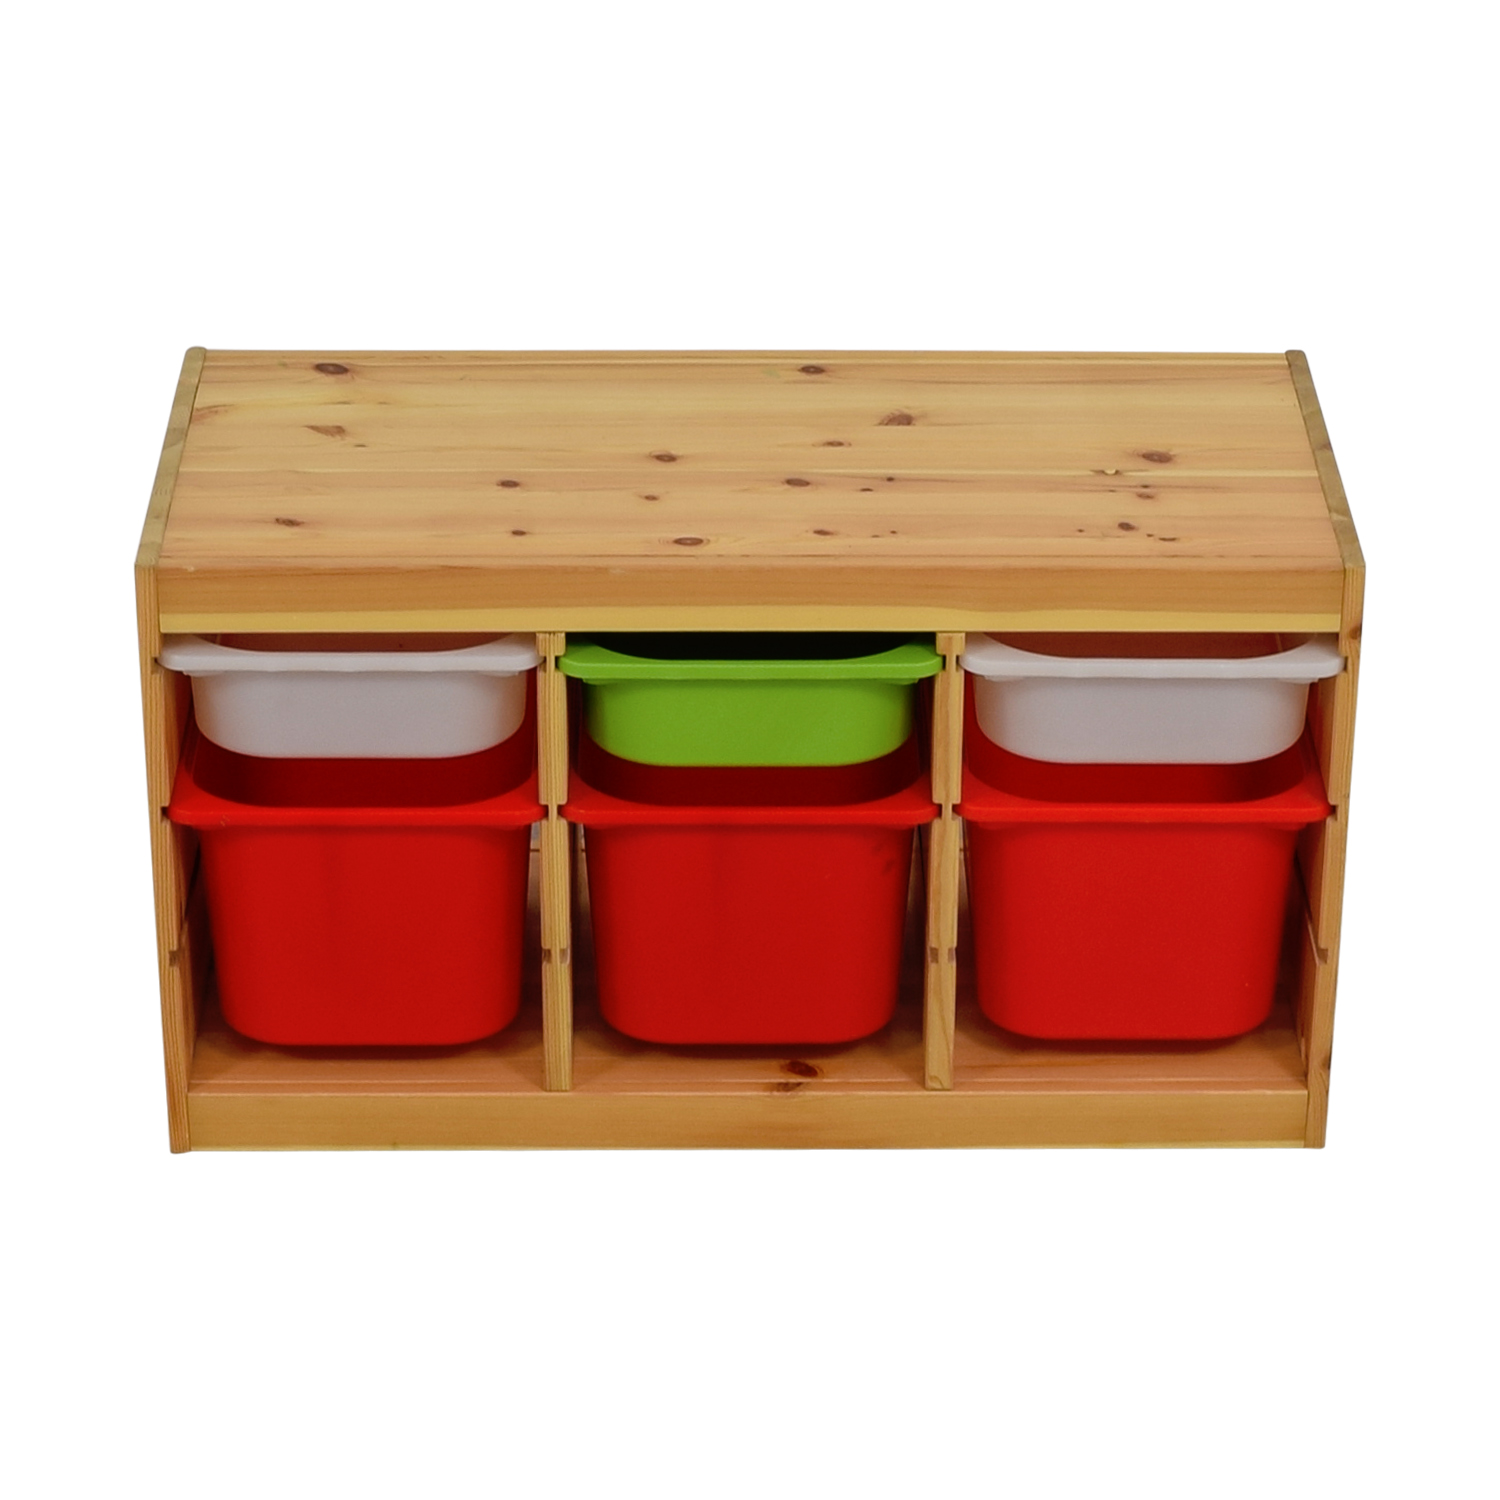 IKEA IKEA Child Wooden Storage with Bins dimensions